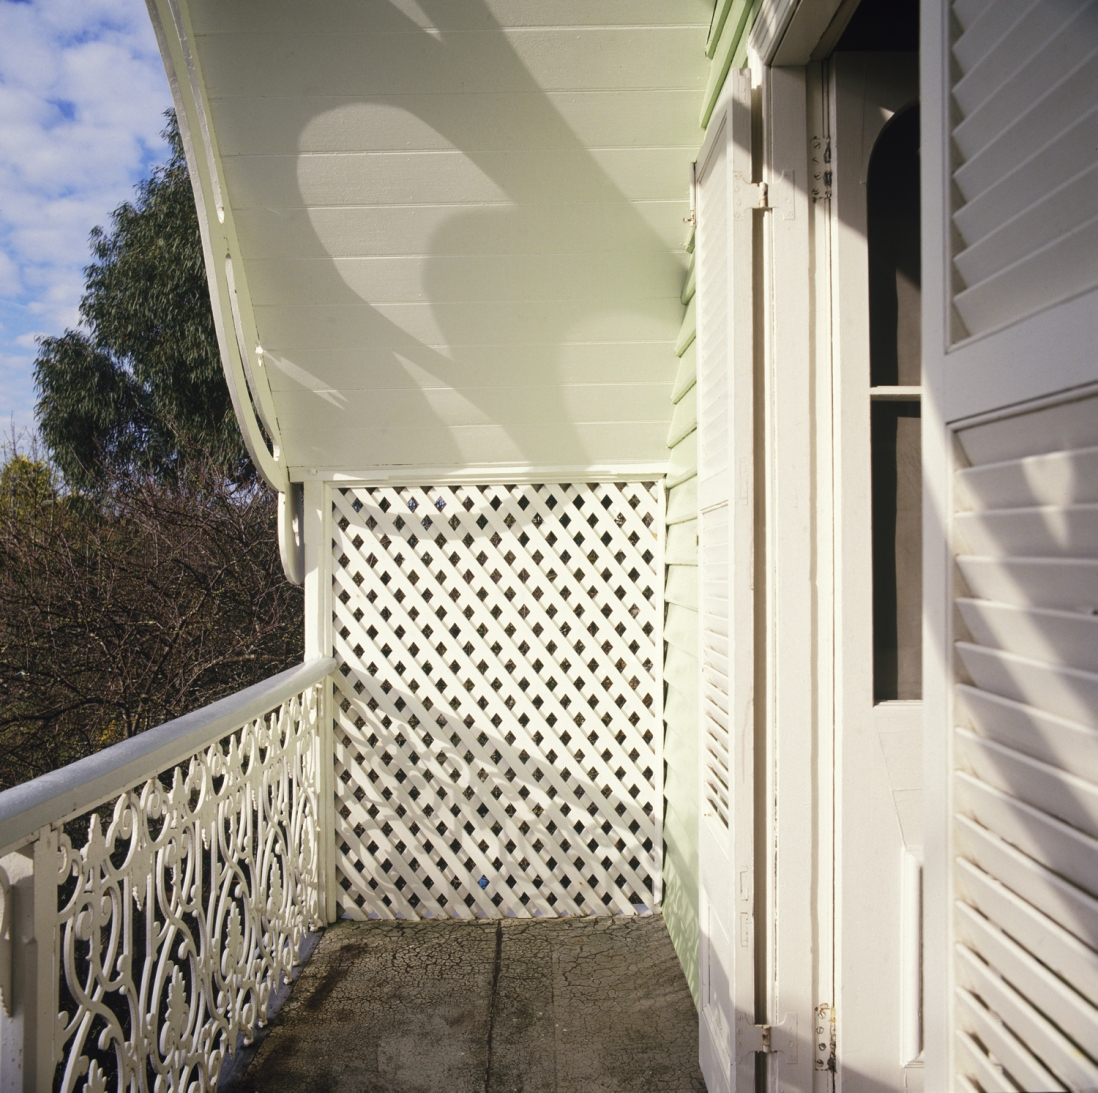 Sunlit balcony with ironwork handrail.